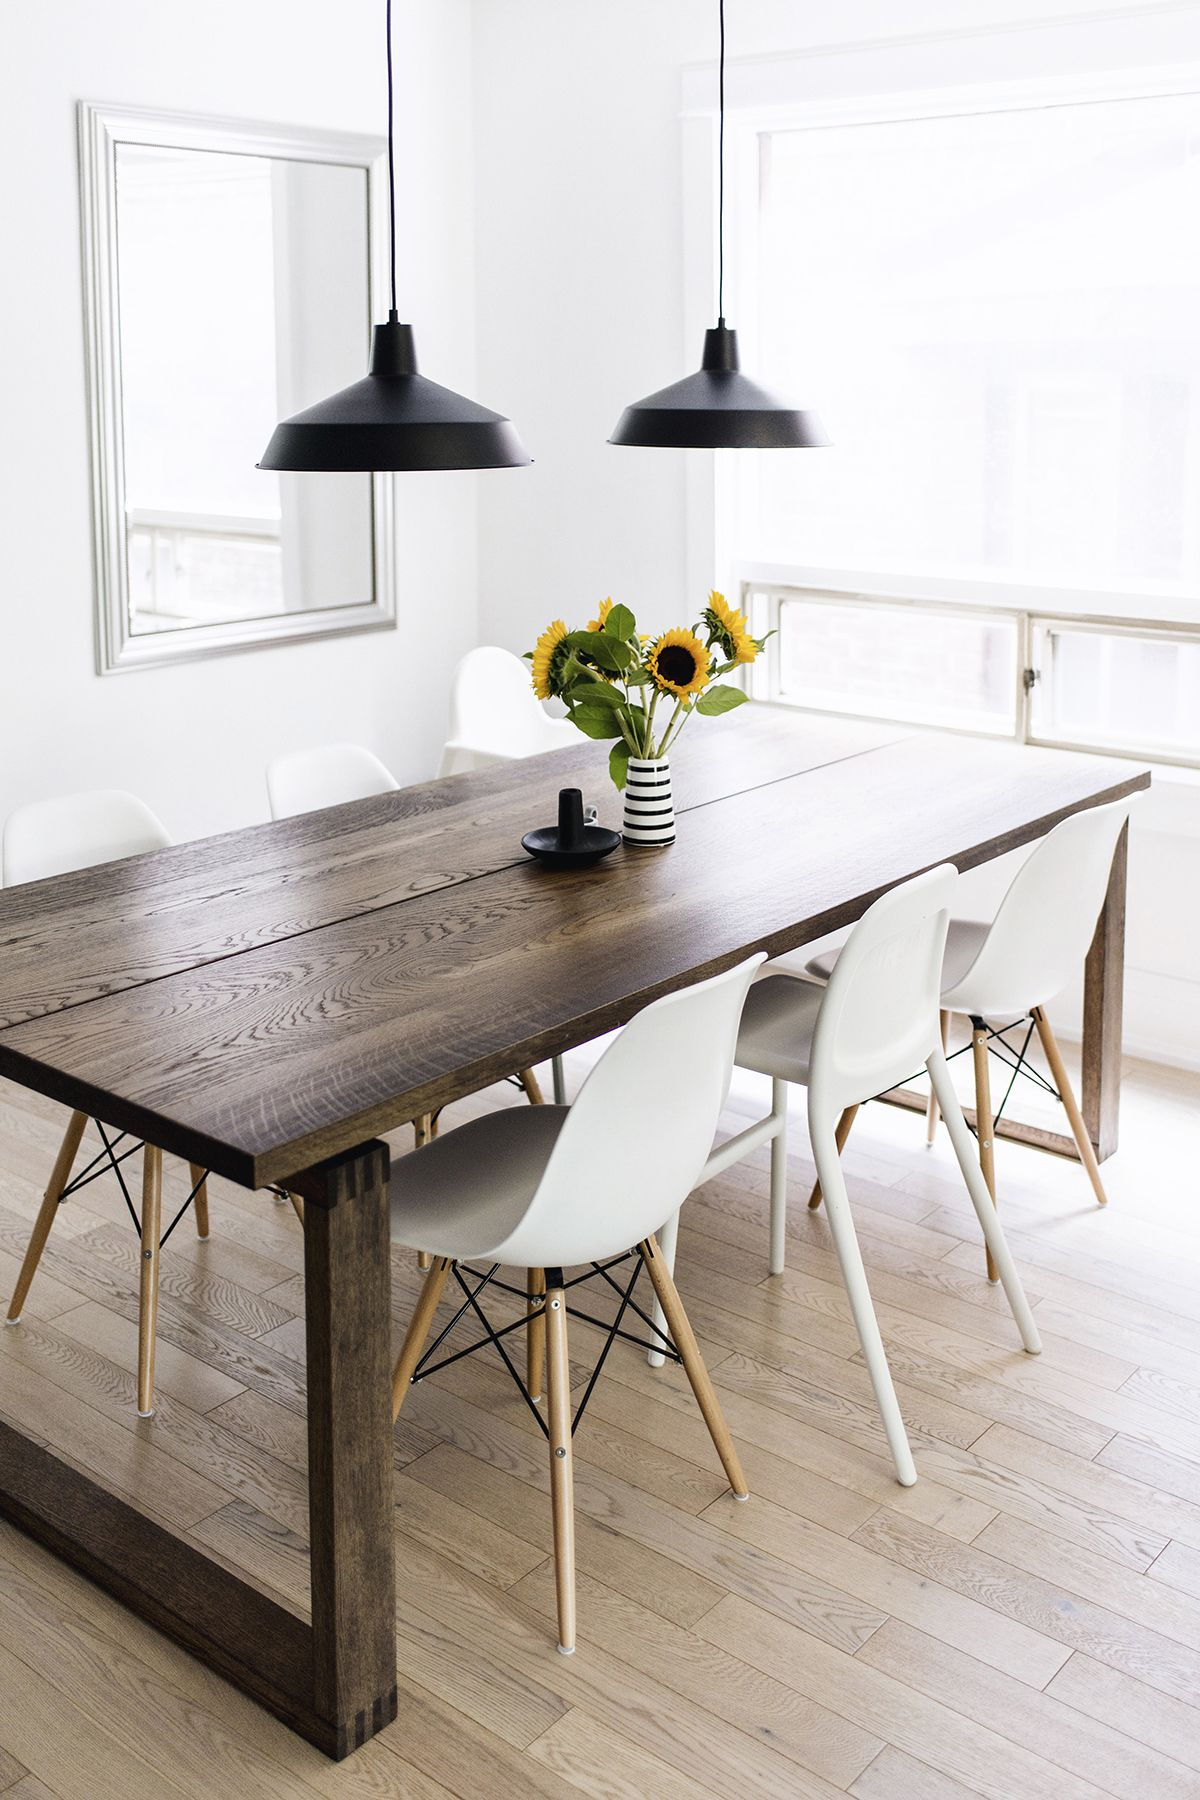 Kitchen Tables With Chairs Kids Wooden Scandinavian Inspired Dining Room Mörbylånga Table